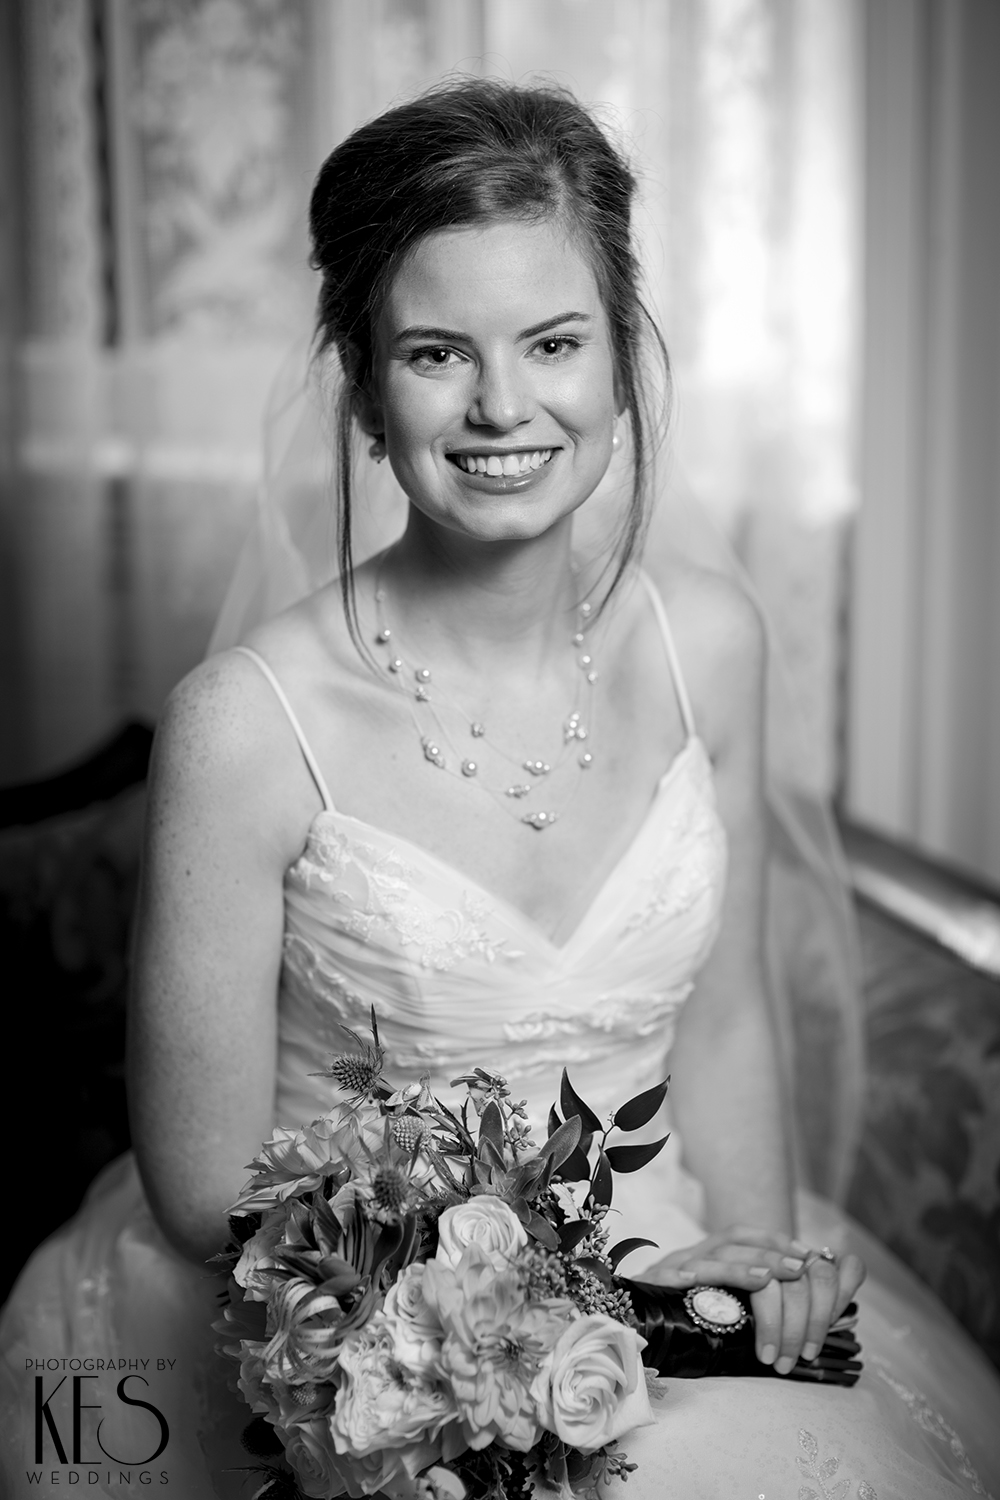 KES Weddings Trapnall Hall Bridals and PVCC6.JPG